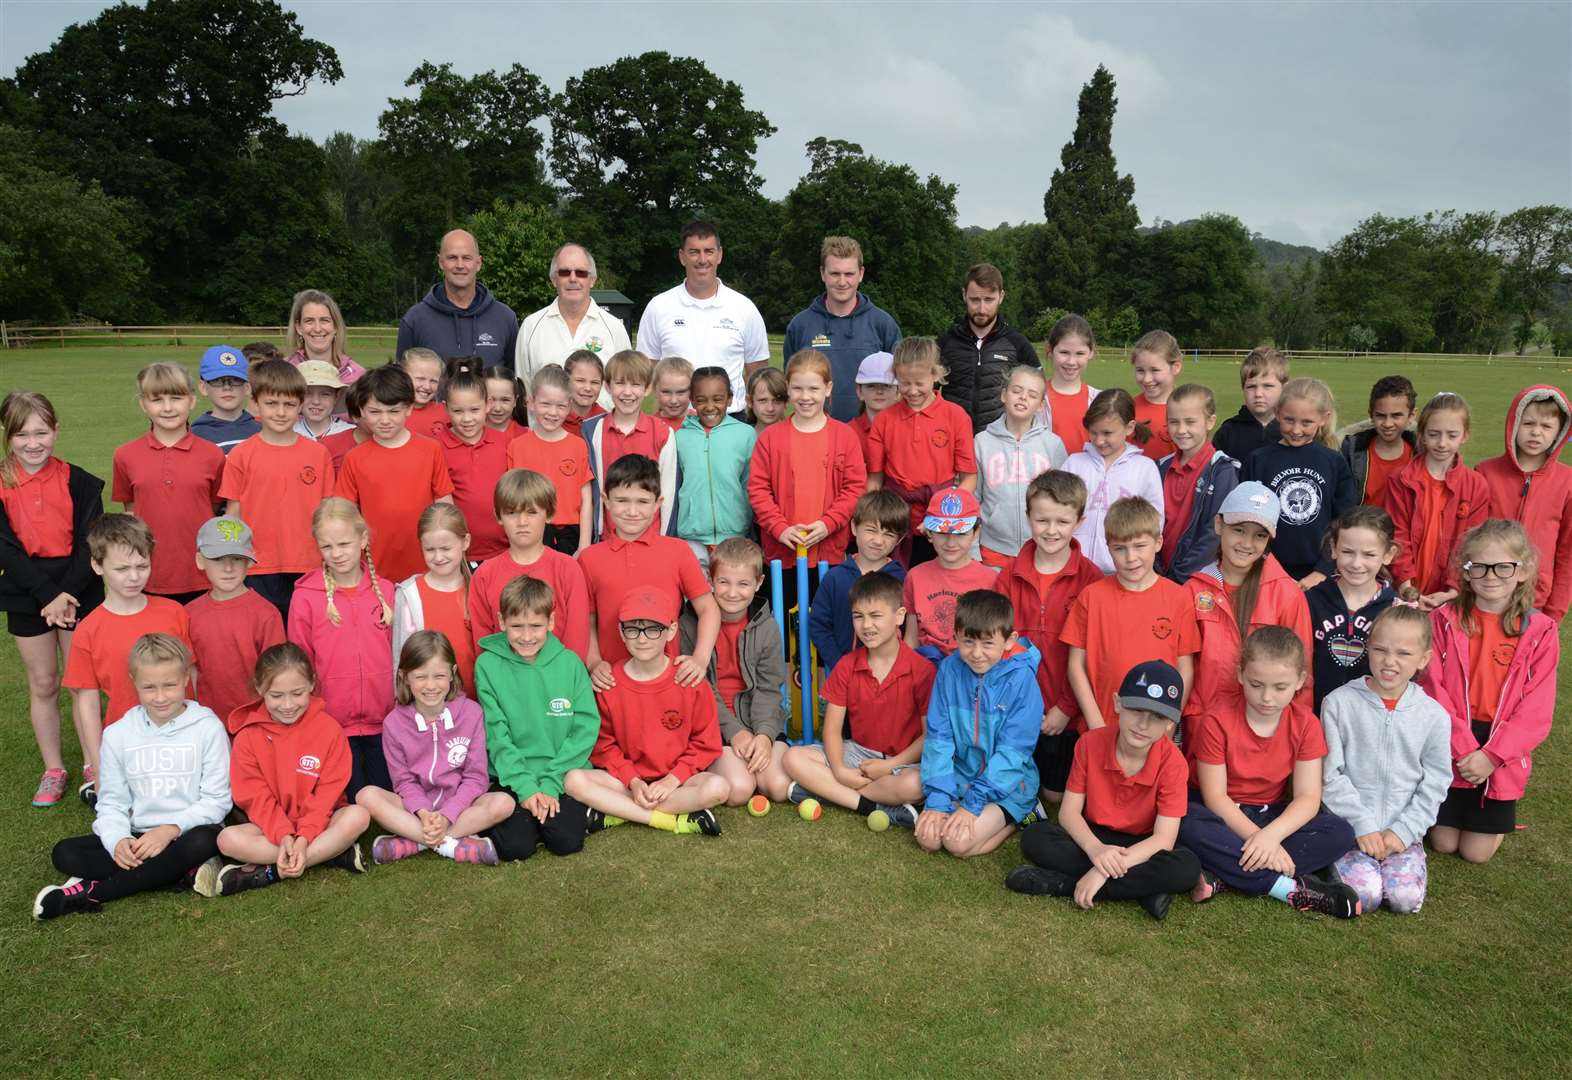 Harlaxton youngsters enjoy countryside and cricket